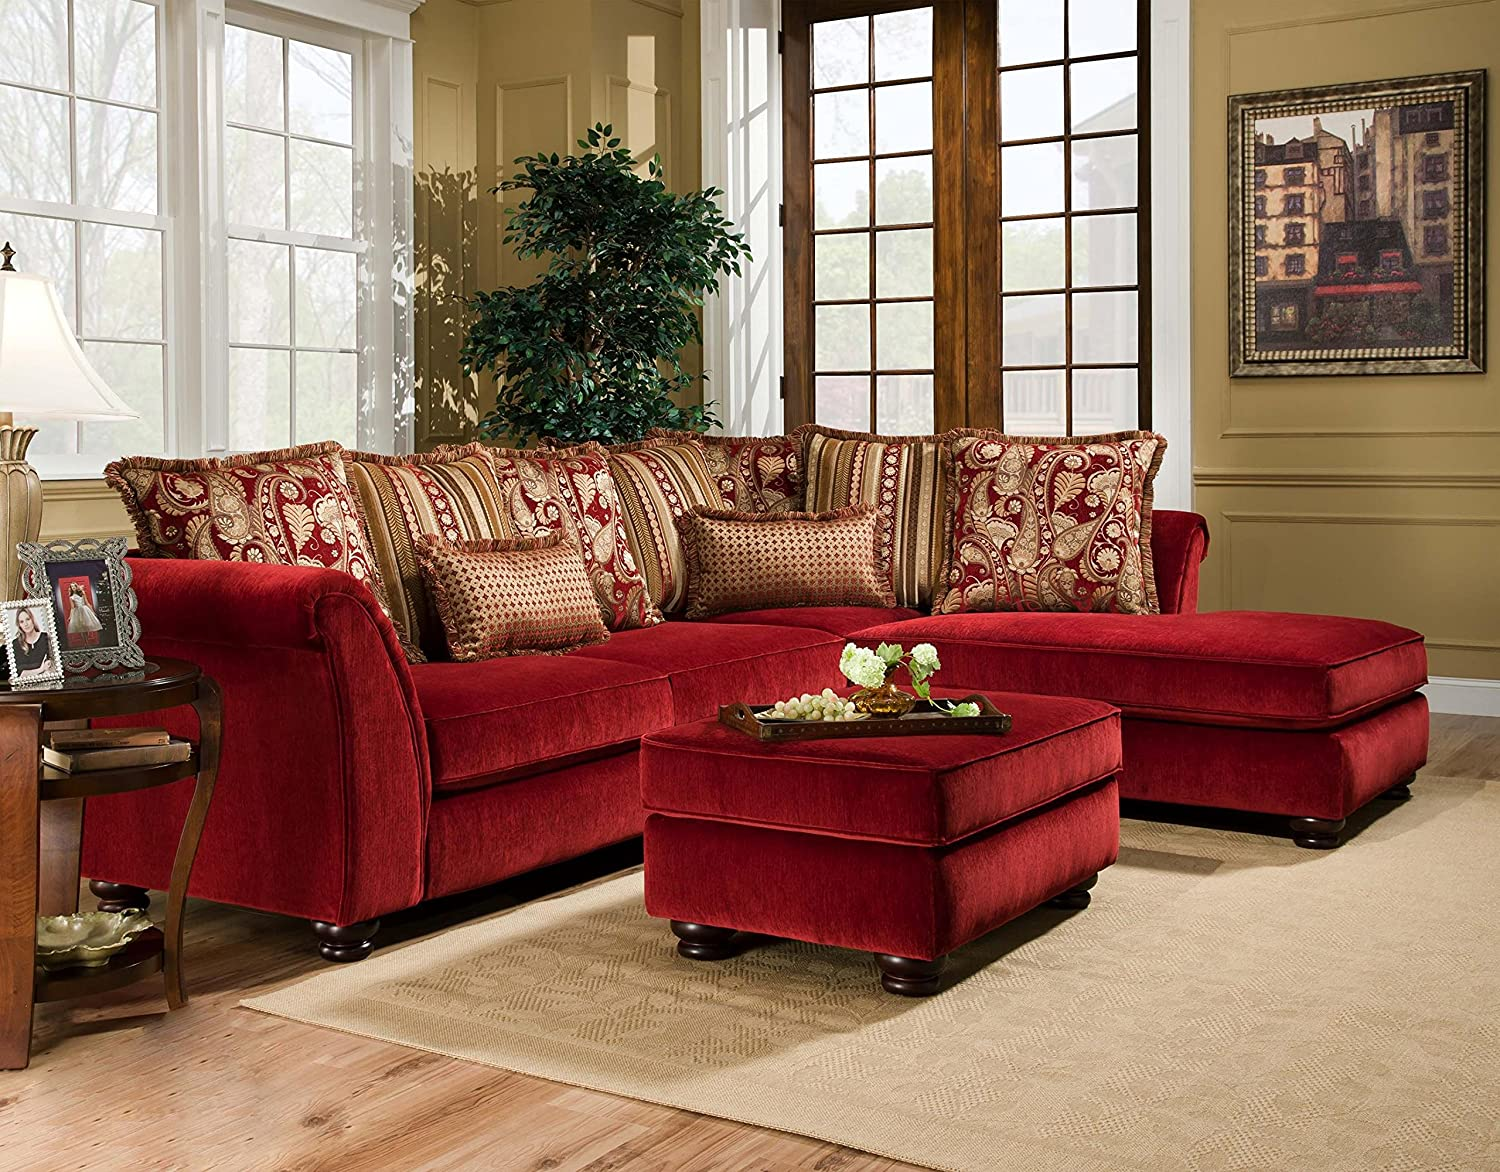 Chelsea Home Furniture Alexandria 2-Piece Sectional - Venice Scarlet/Bali Scarlet